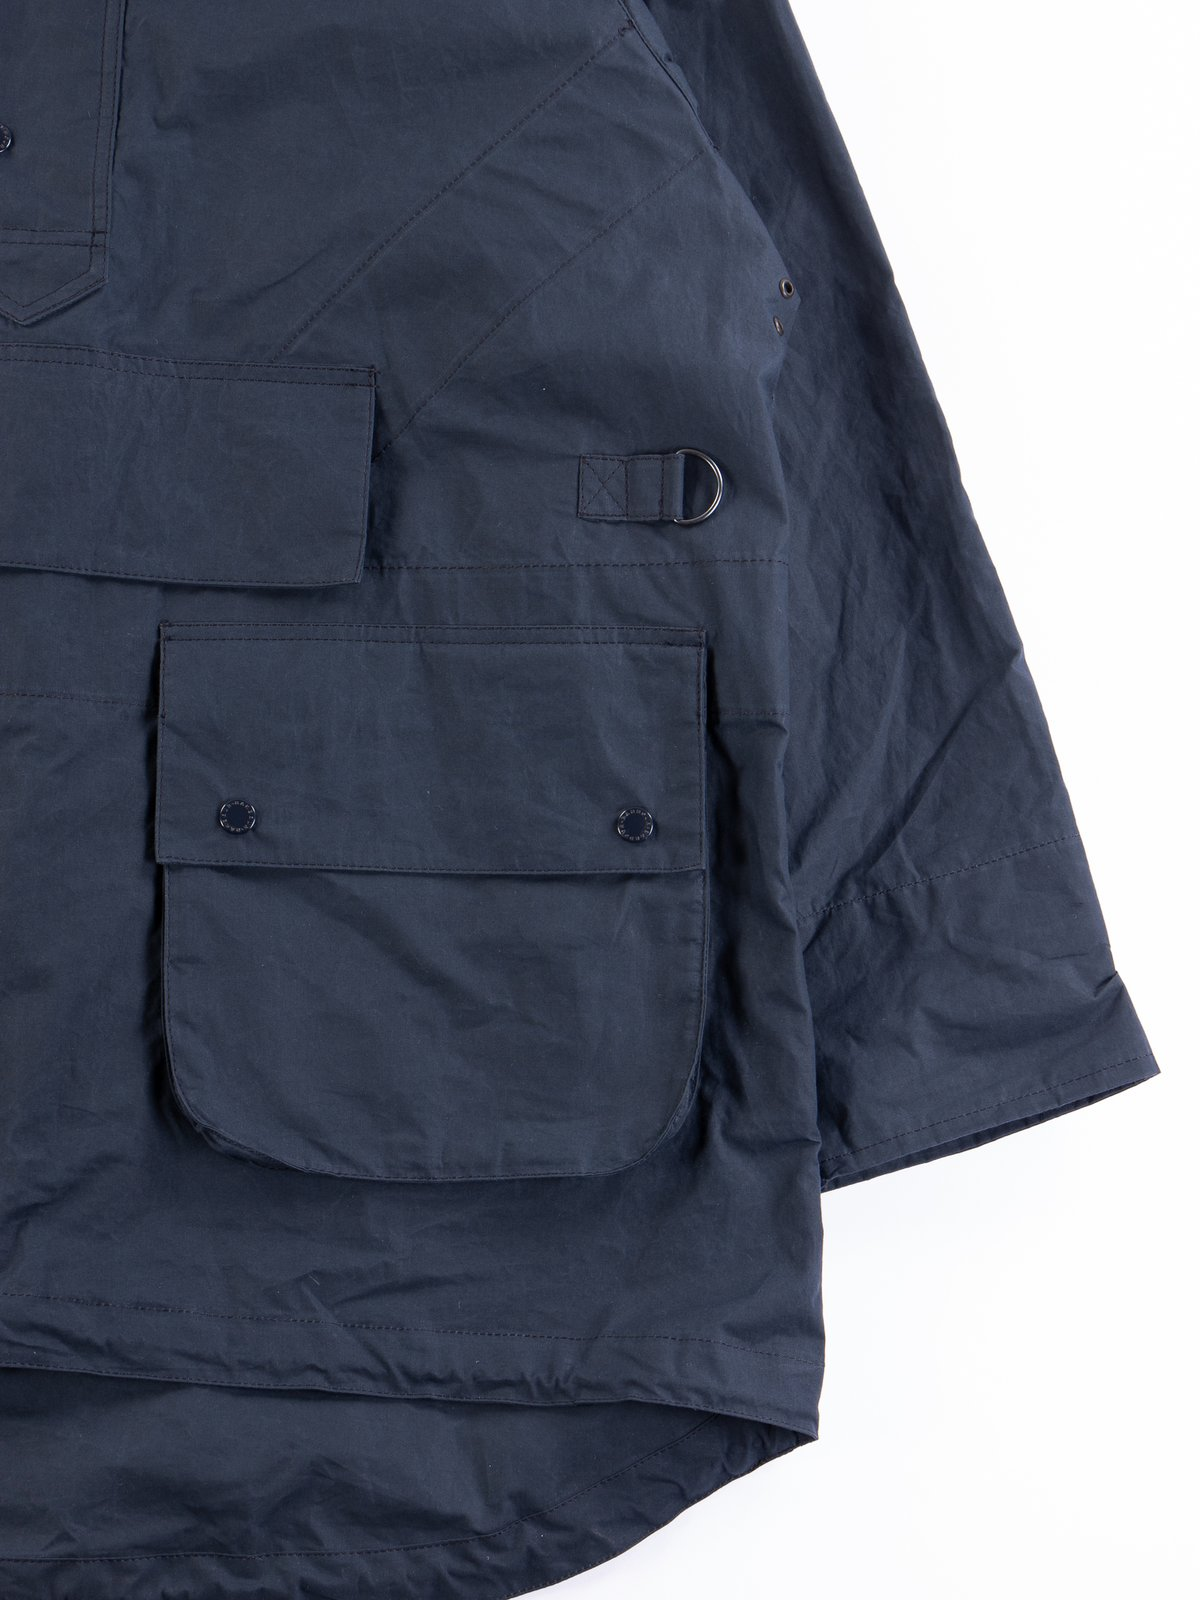 Navy Warby Jacket - Image 4